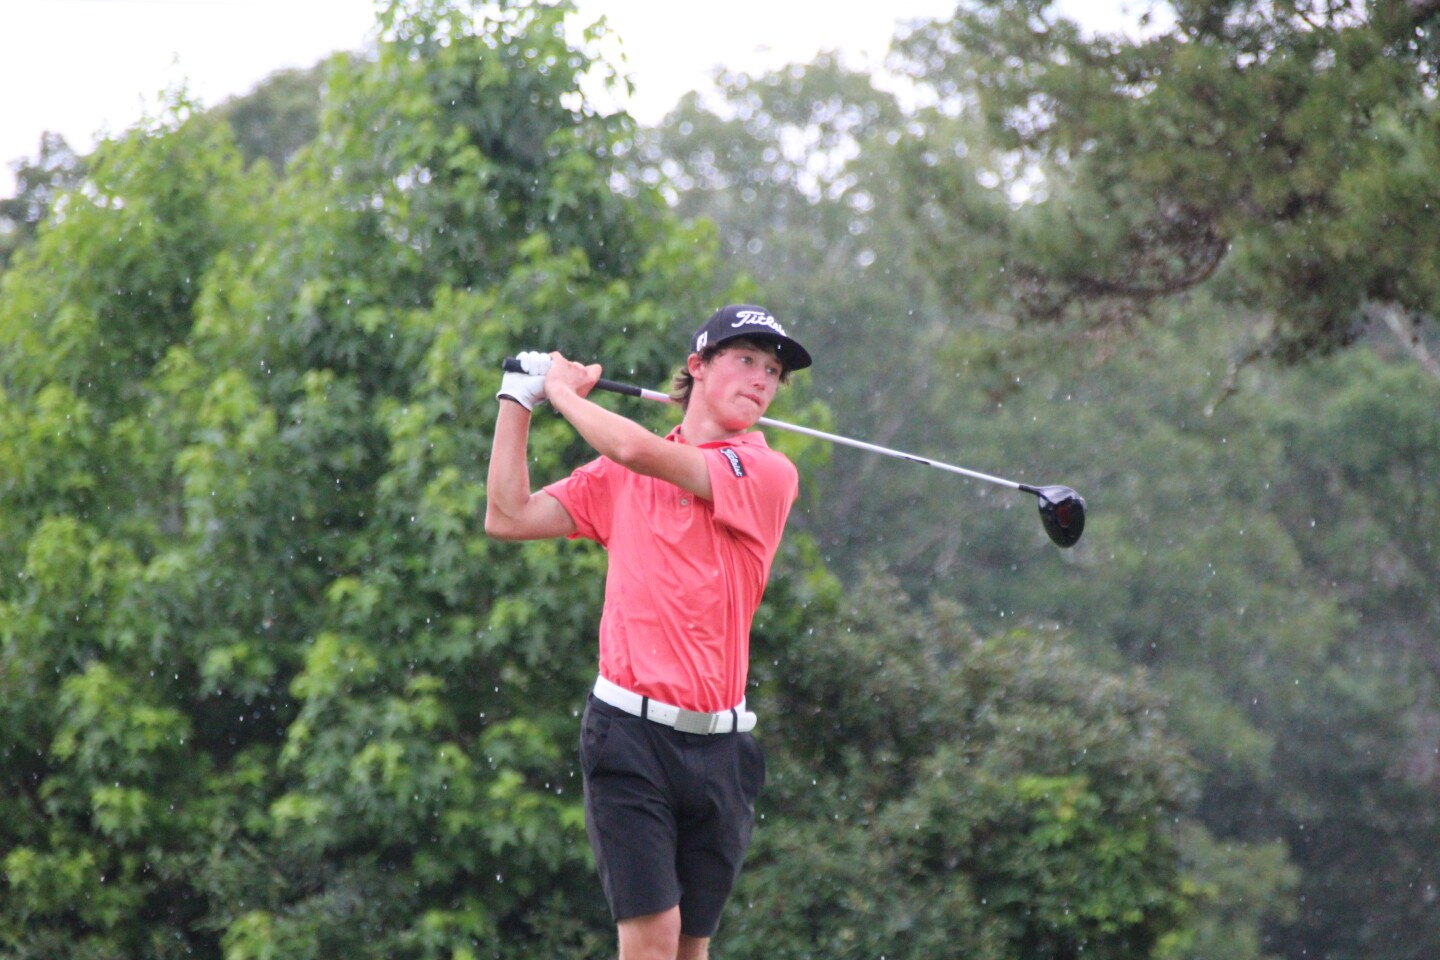 David Ford - Third Round - AJGA Invitational at Sedgefield